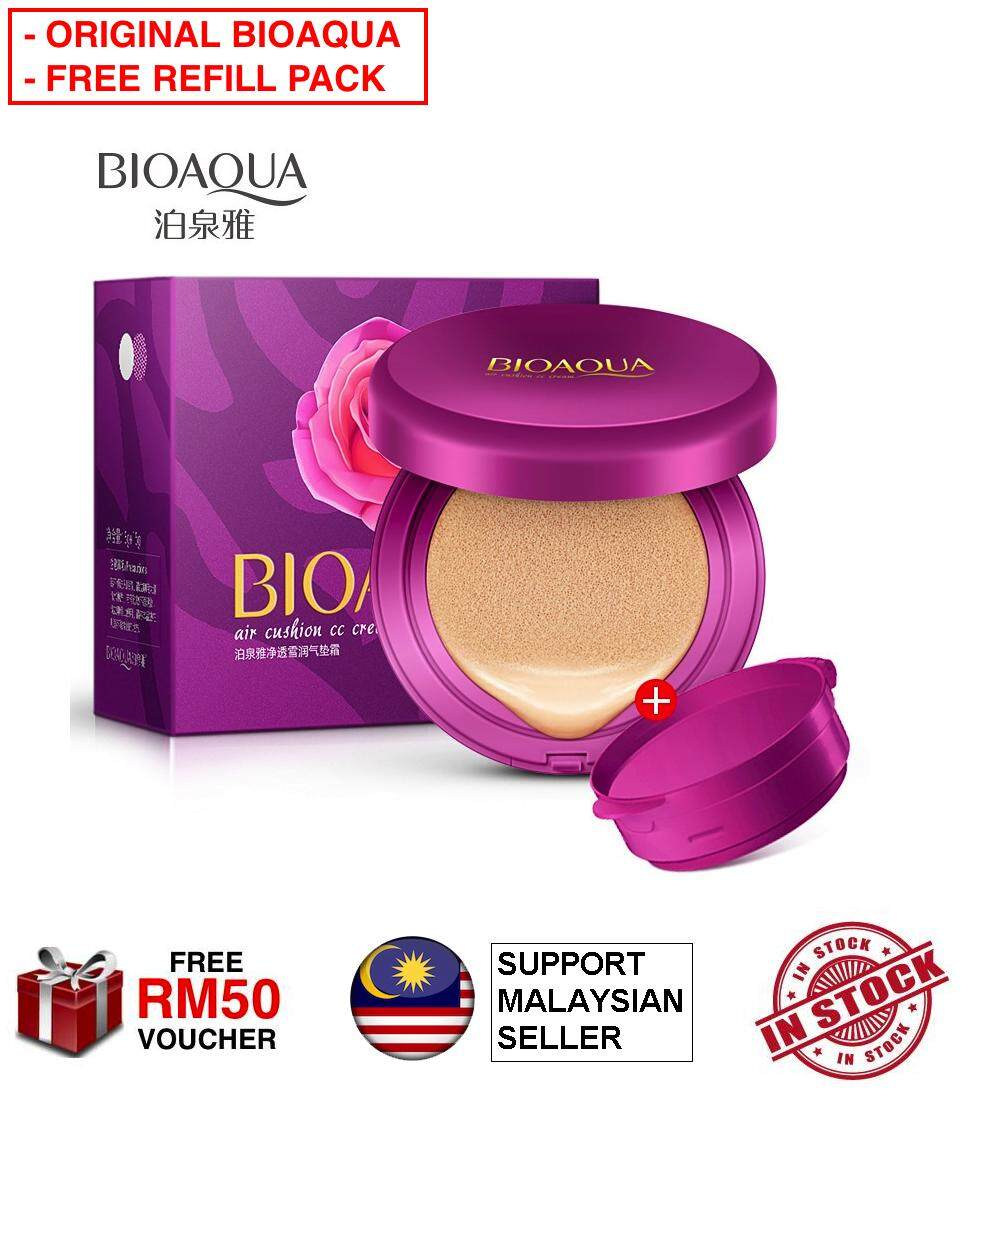 (FREE REFILL) WJS Bioaqua Lavender Purple CC Cream Bio Aqua Air Cushion Extreme Bare Make Up Complete Coverage Compact Foundation 15g COMPACT + 15g REFILL IVORY WHITE NATURAL LIGHT SKIN (FREE RM50 VOUCHER) foundation